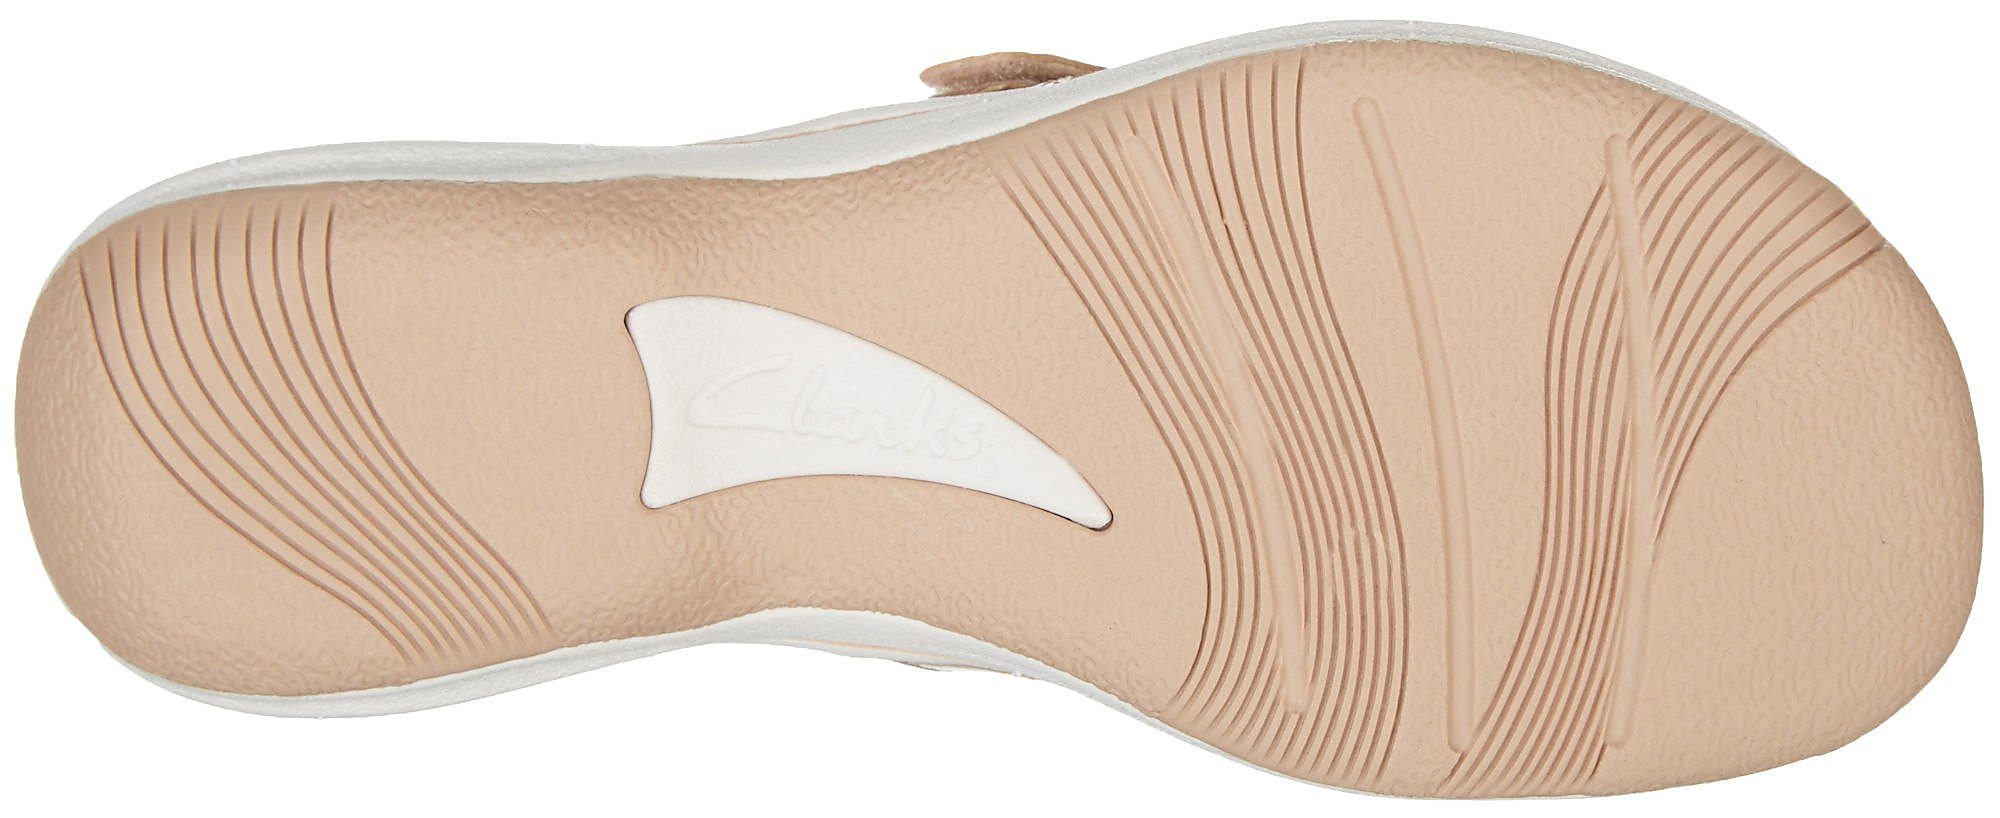 Clarks-Womens-Cloudsteppers-Breeze-Sea-Patent-Flip-Flops thumbnail 9